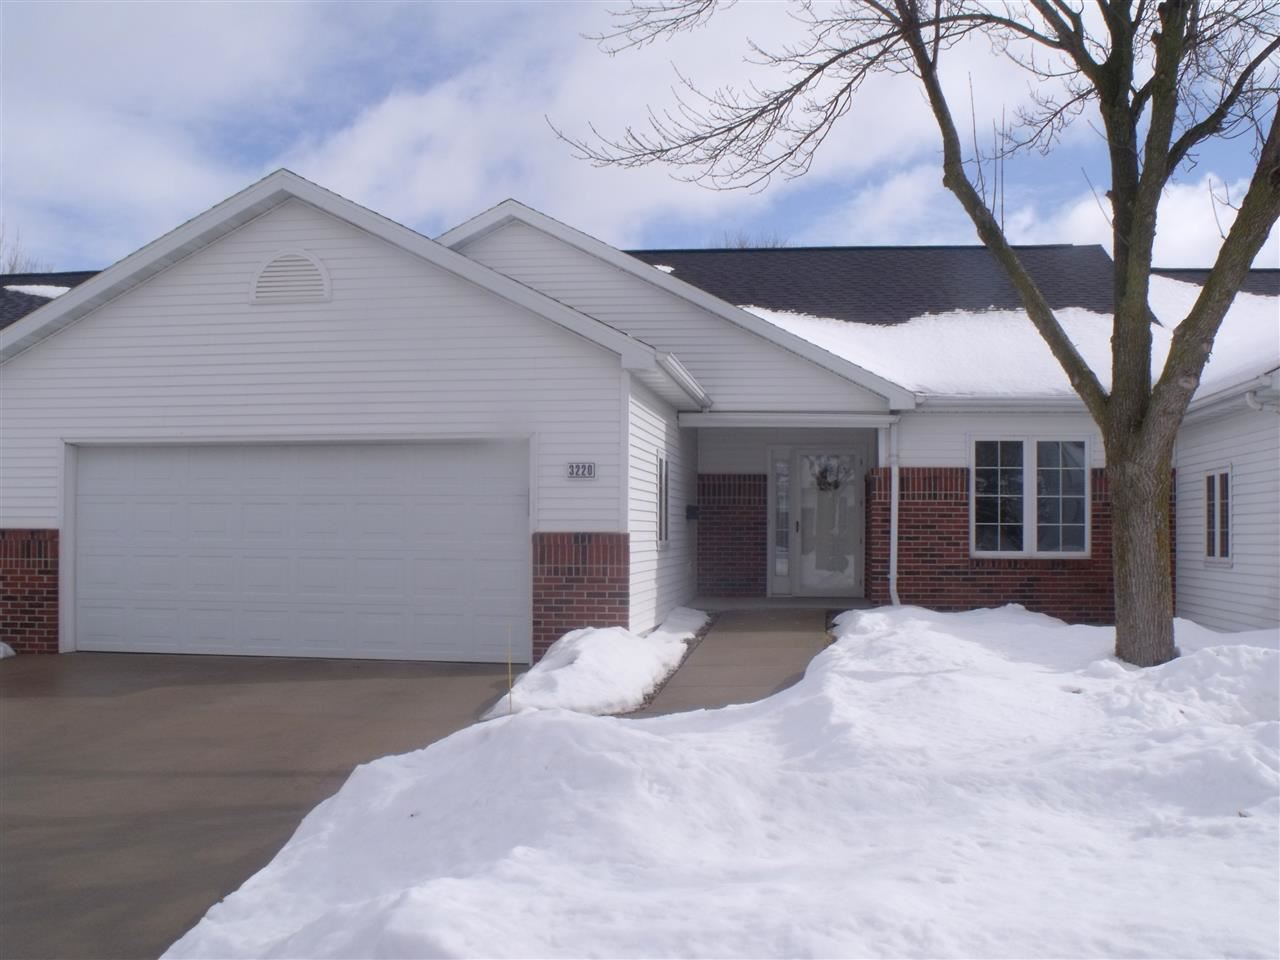 3220 N BARKWOOD Lane, Appleton, WI 54914 - MLS#: 50236005